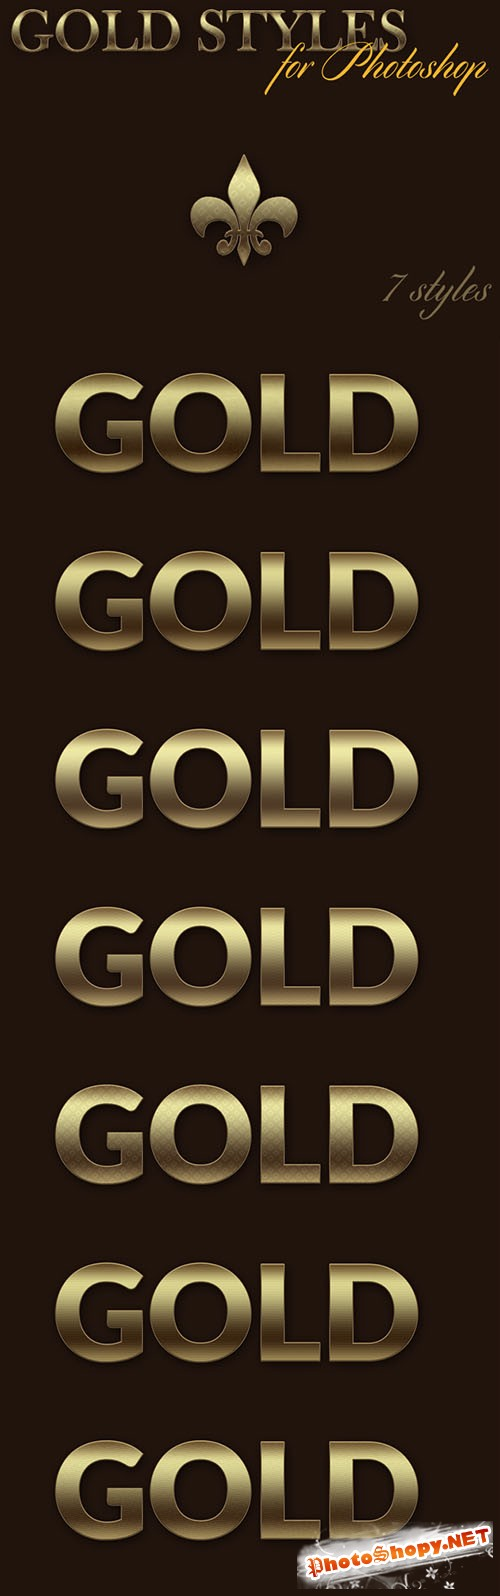 Designtnt - Gold Photoshop Styles